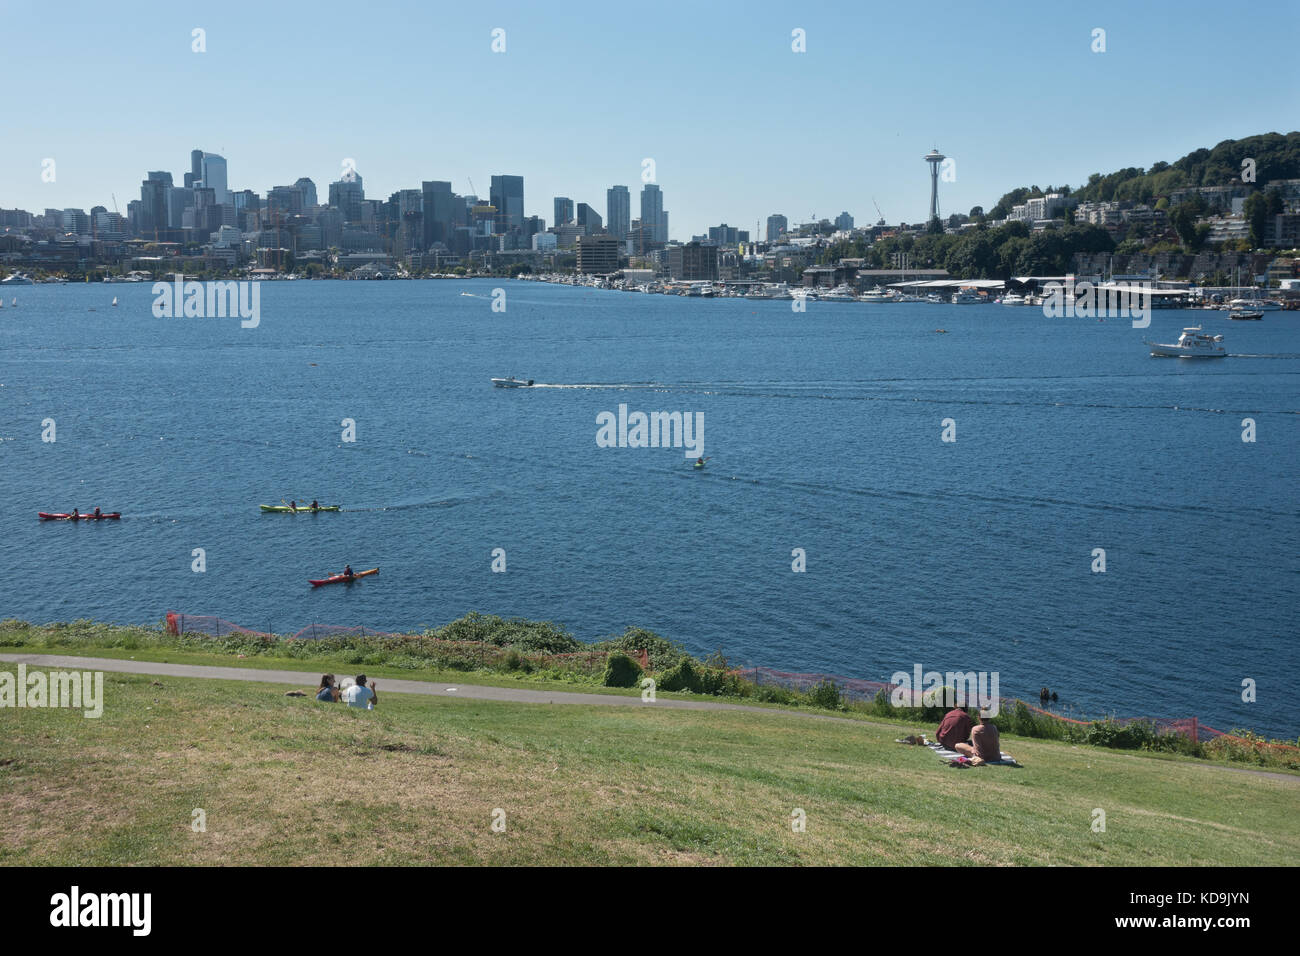 Tourists lounge on hill, aka The Mound -  at Gas Works Park overlooking scenic Lake Union, kayakers, Seattle skyline - Stock Image